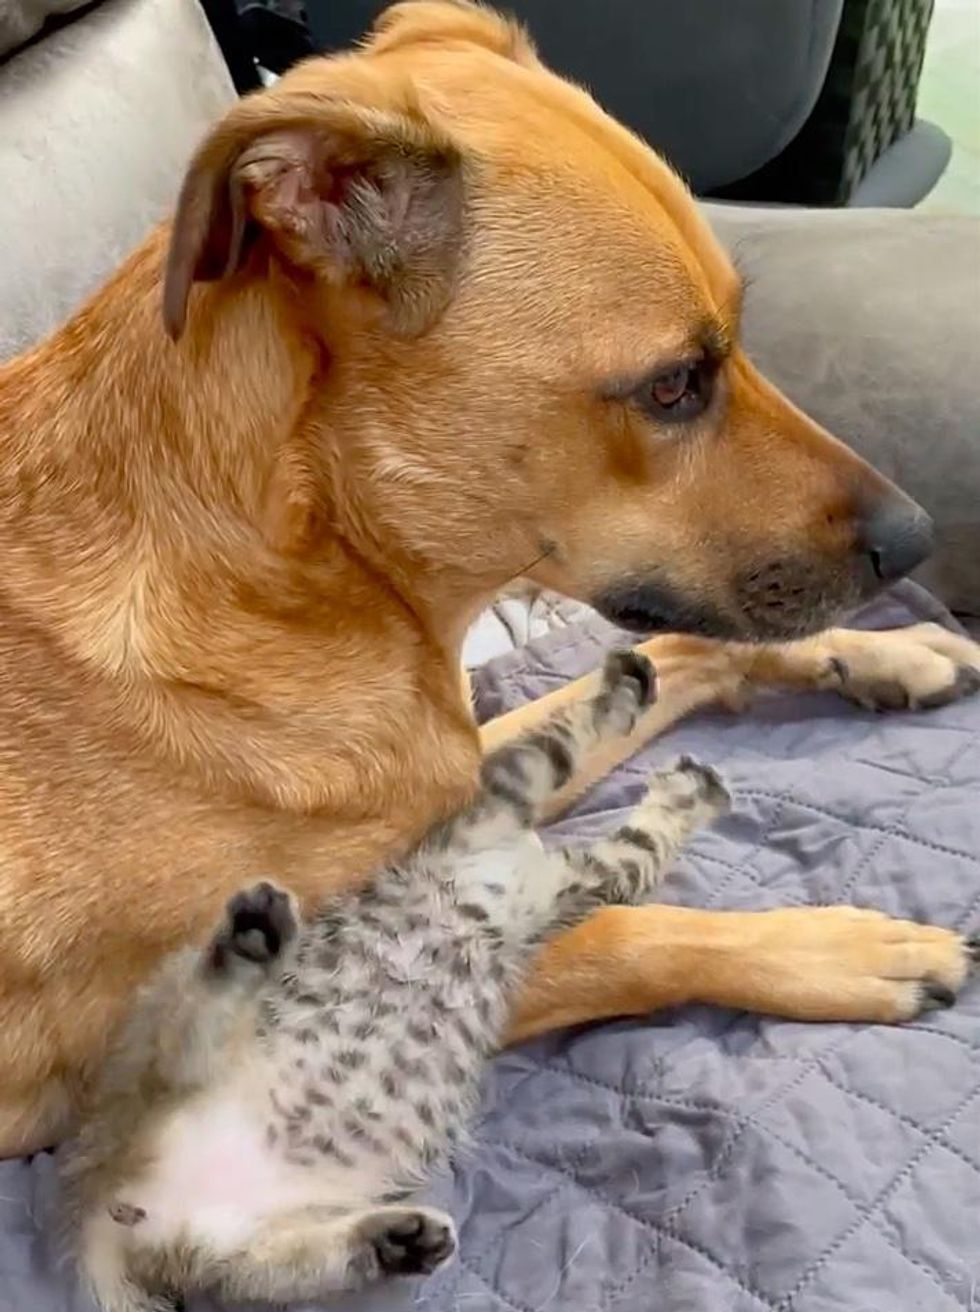 Kitten Decides to Be Raised by Dog After Being Found Alone, and Turns into Affectionate Fluff Ball